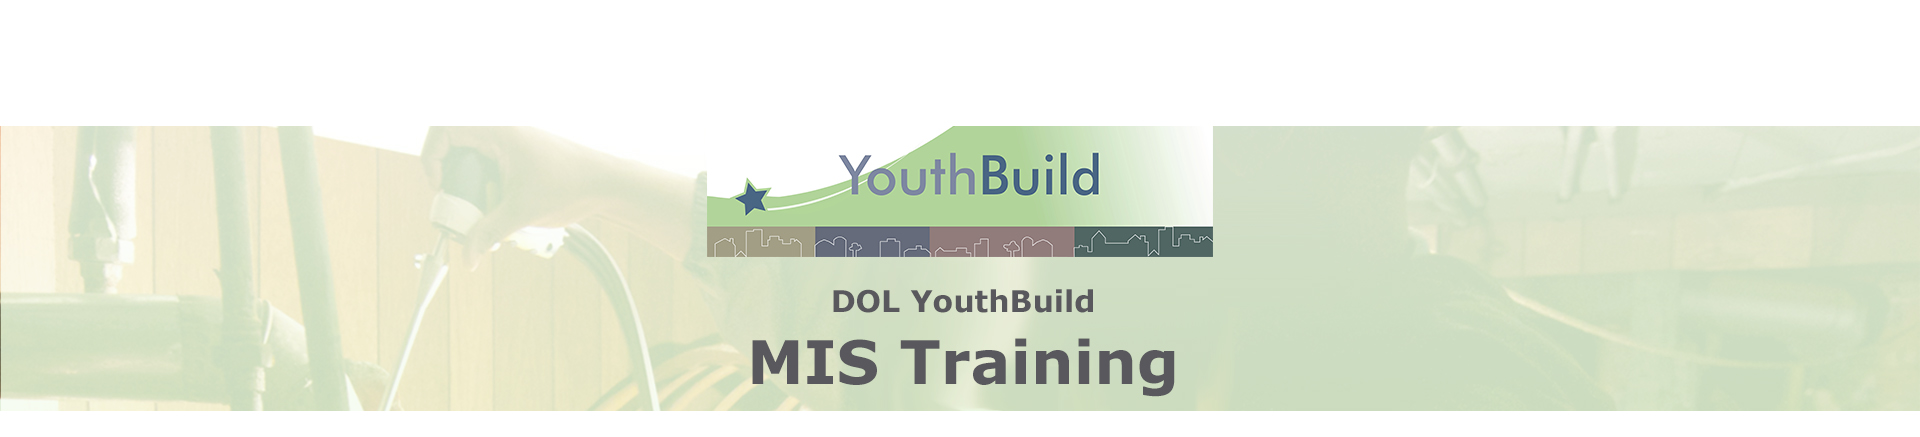 DOL YouthBuild MIS Training Session #2